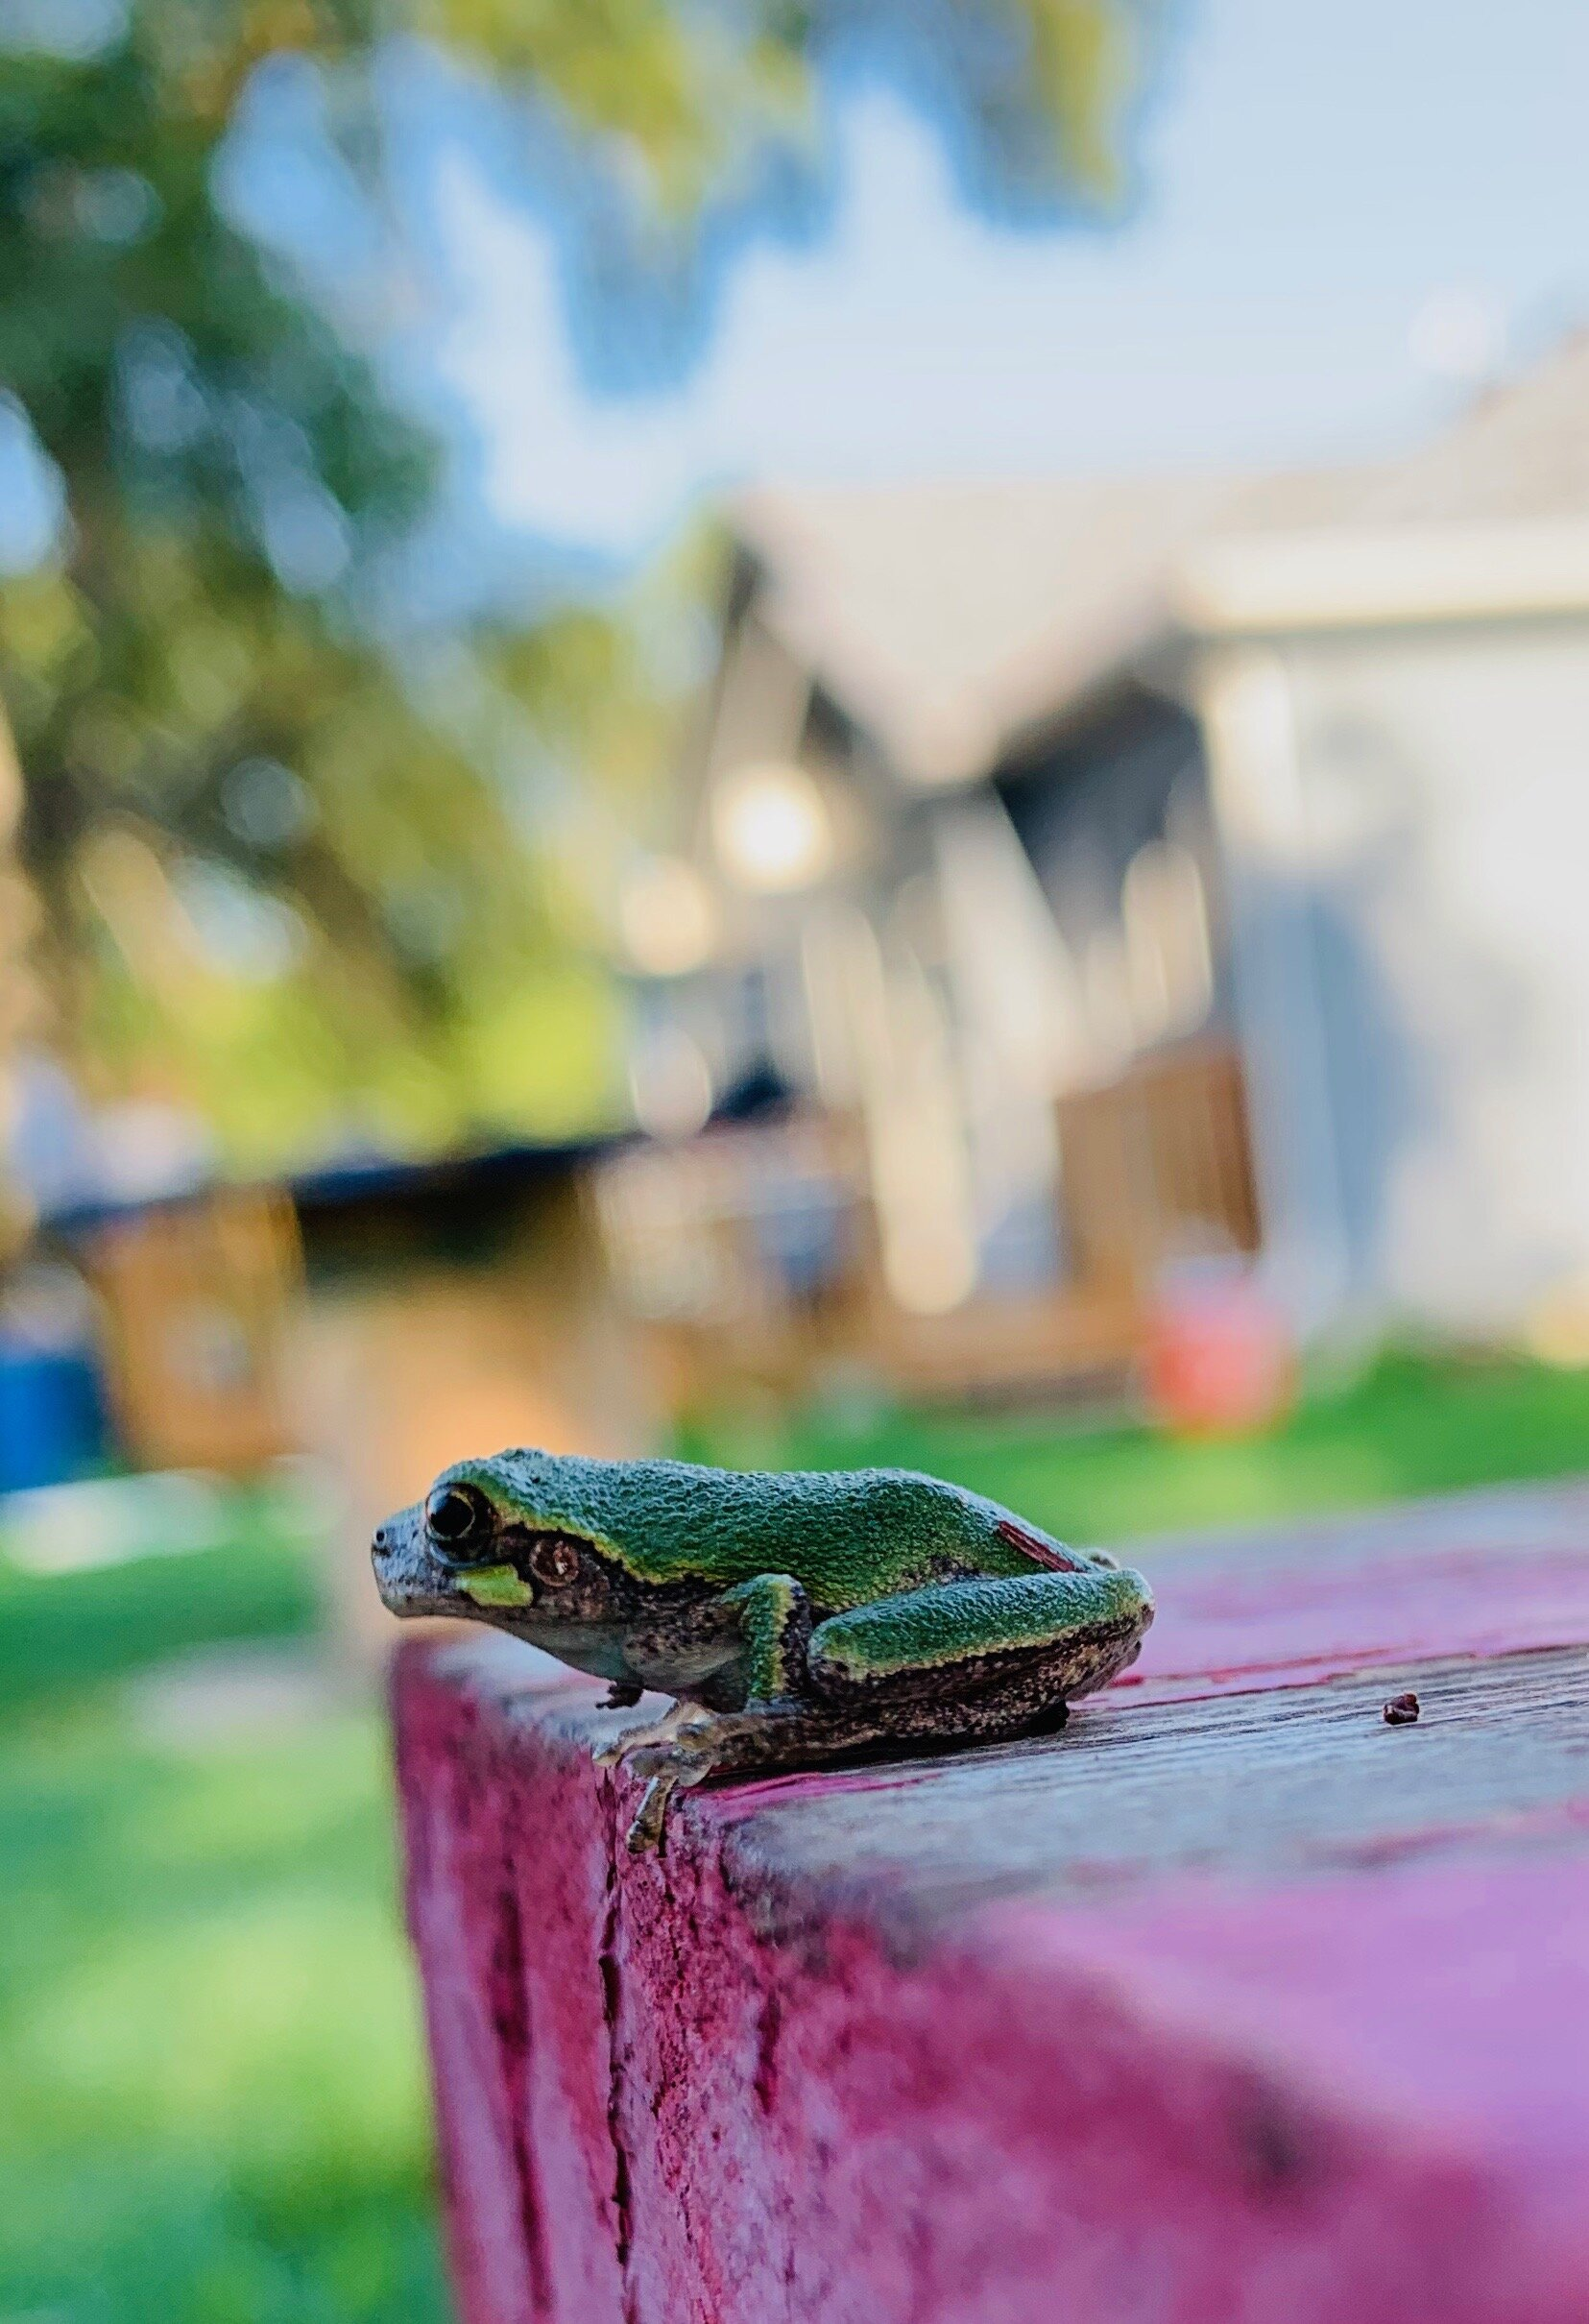 A frog I found in the middle of no were.